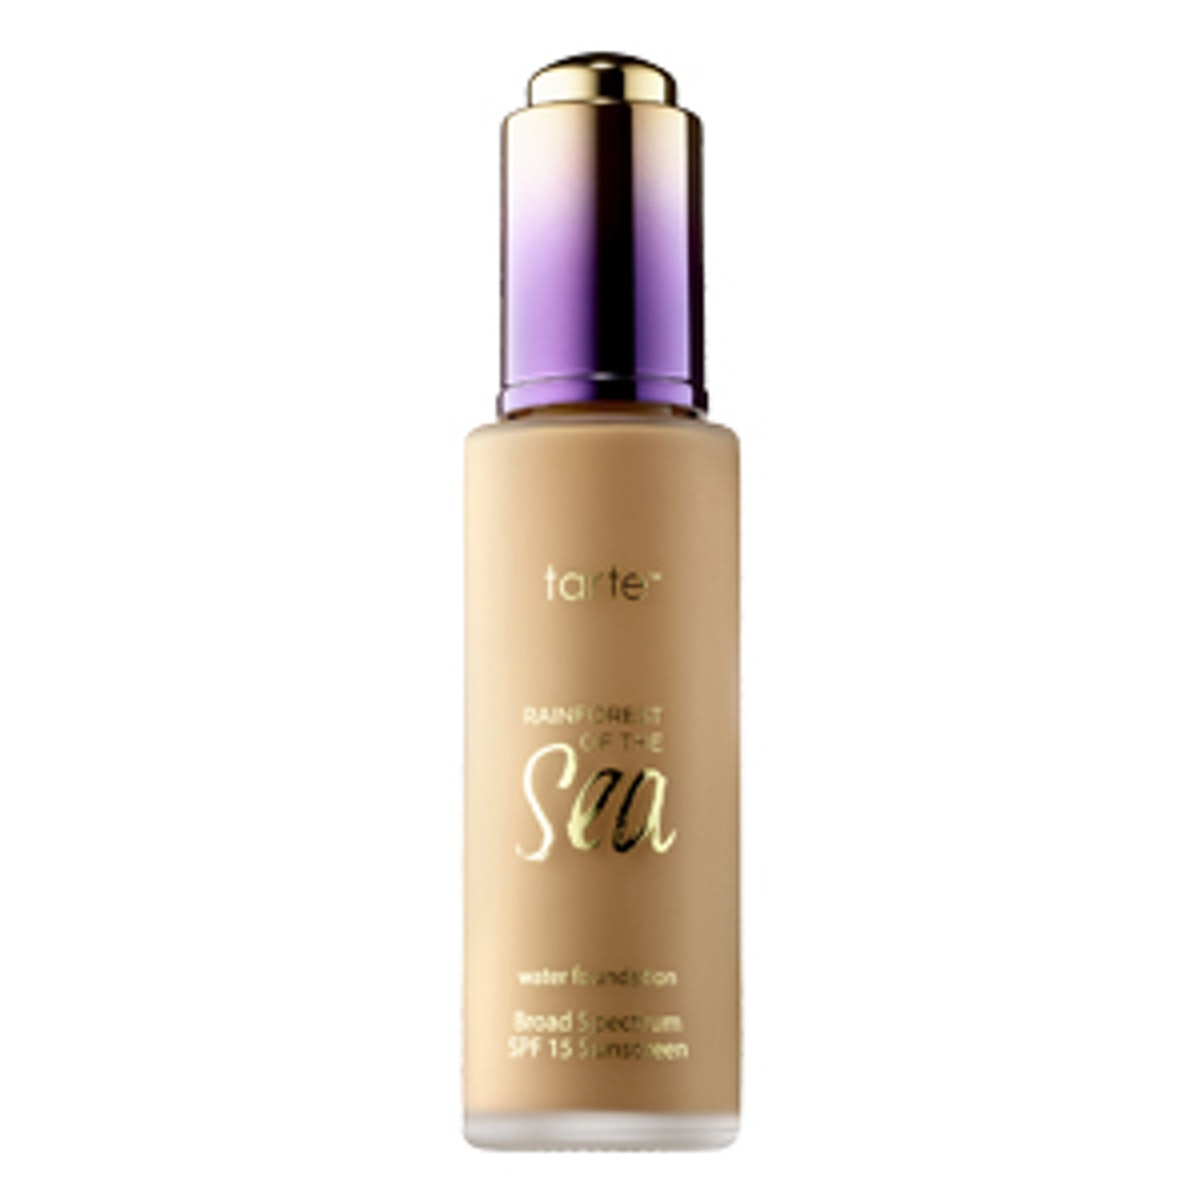 Rainforest of the Sea Water Foundation Broad Spectrum SPF 15